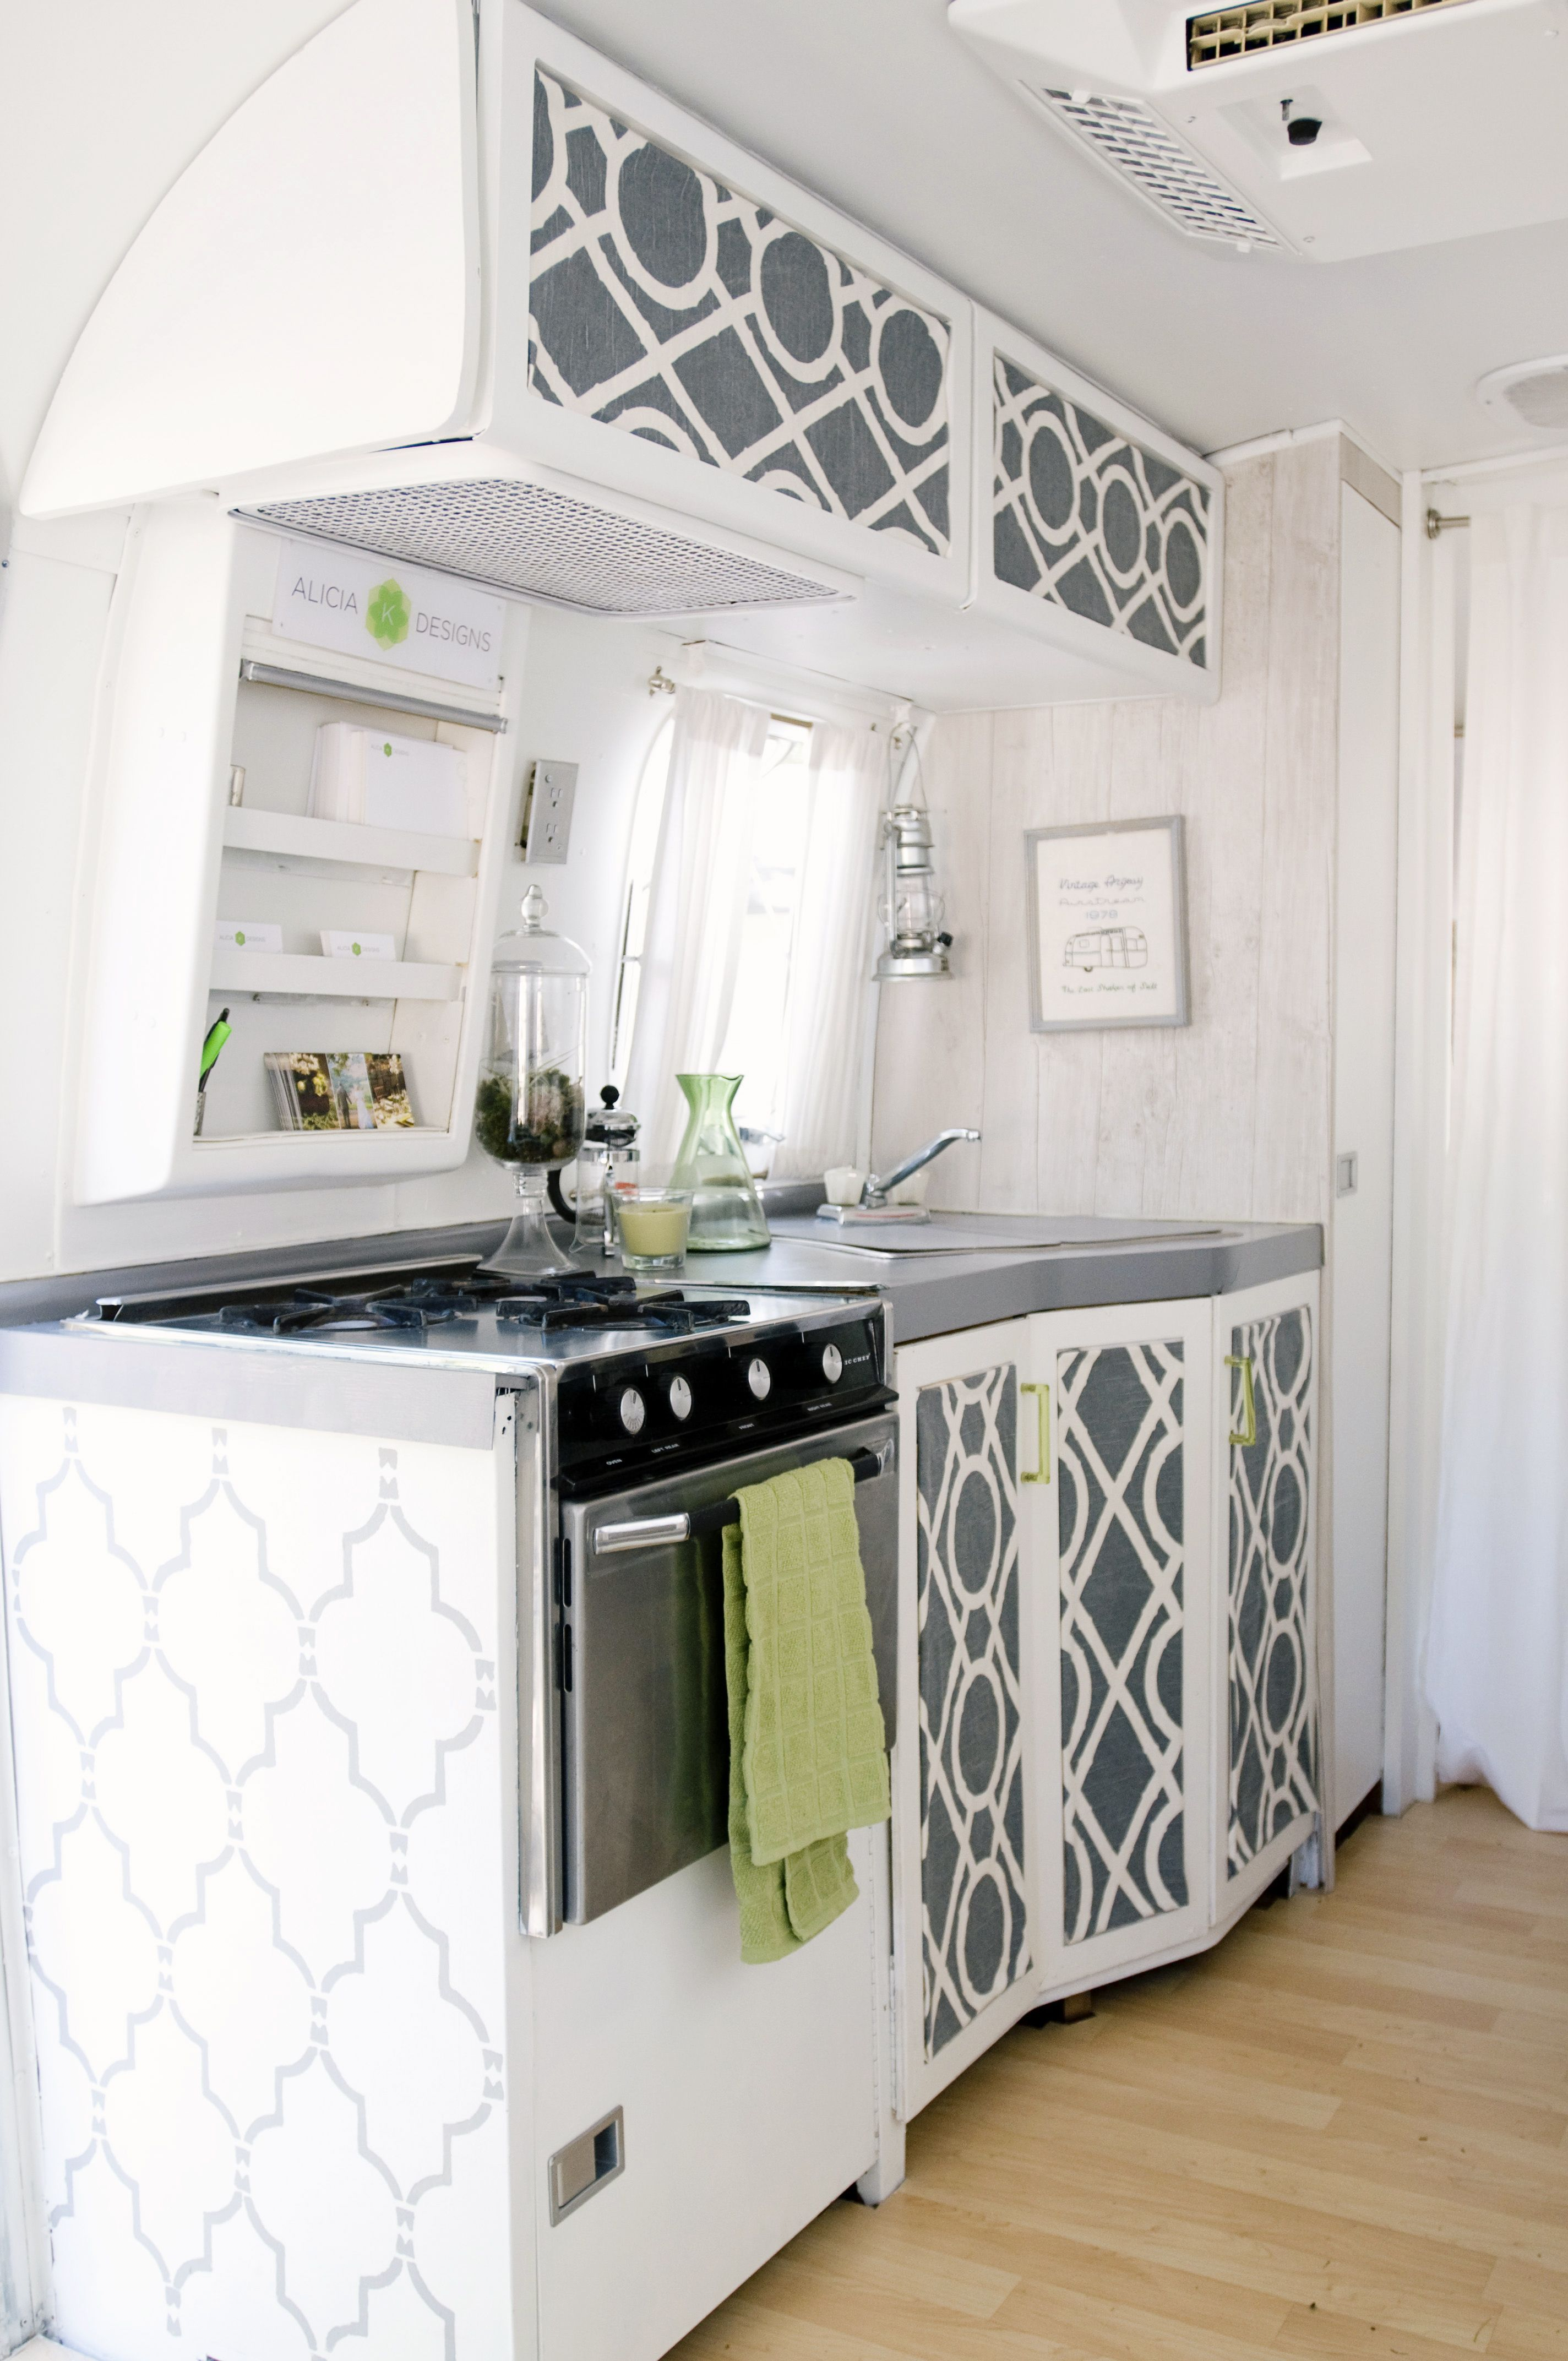 Kitchen Area Photo by: Angie Silvy Photography This looks actually ...